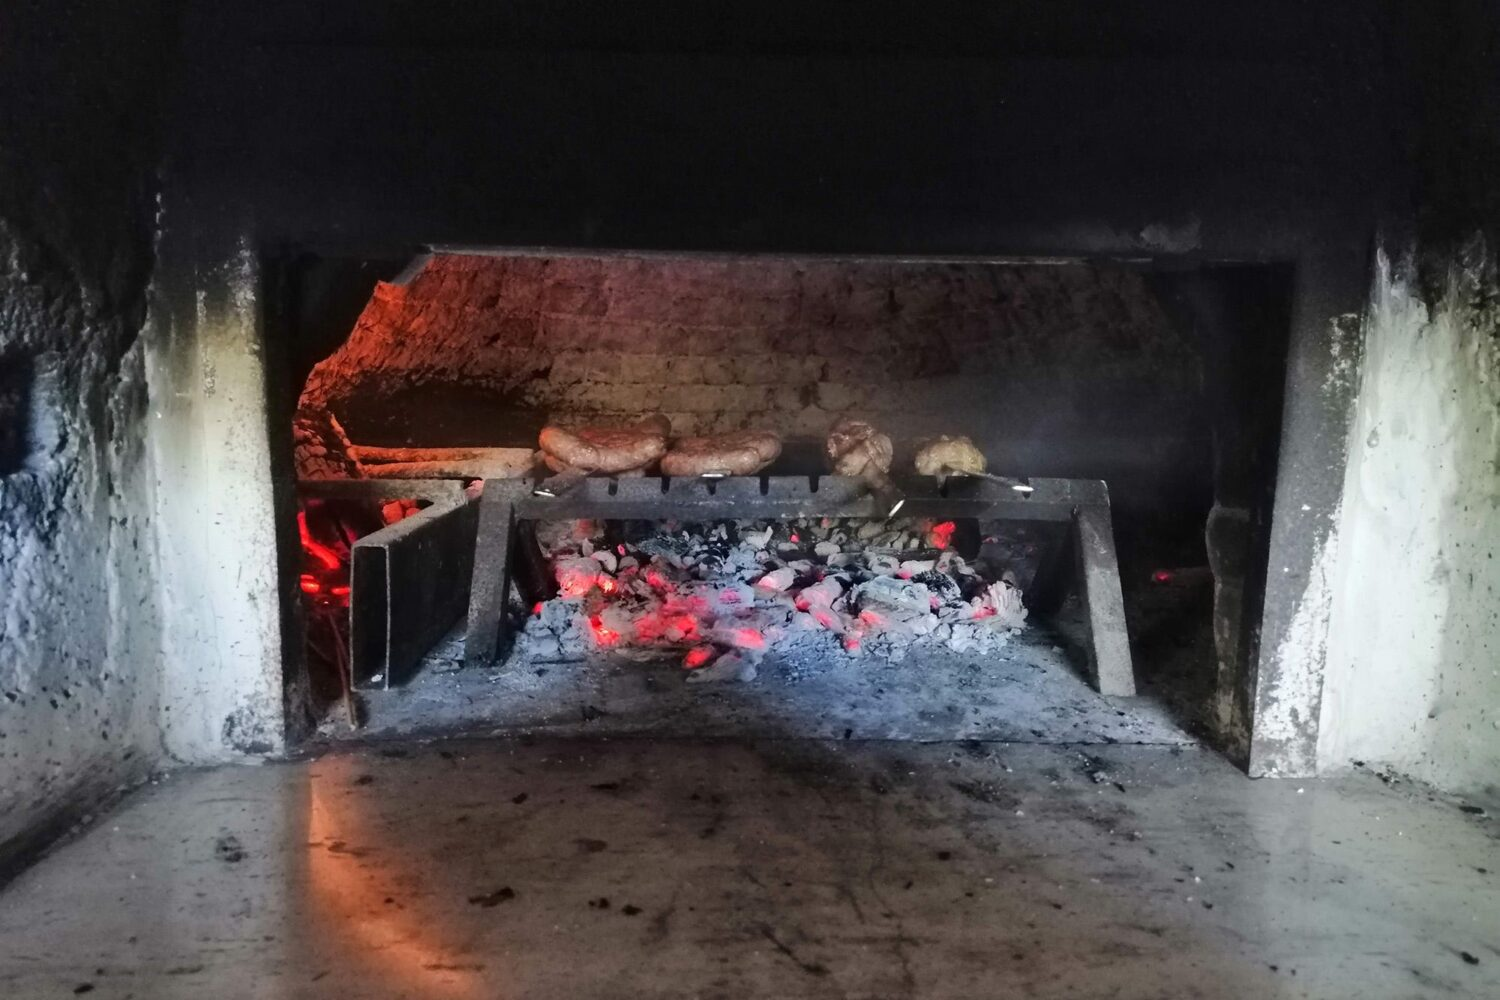 Traditional Apulian meat barbecue